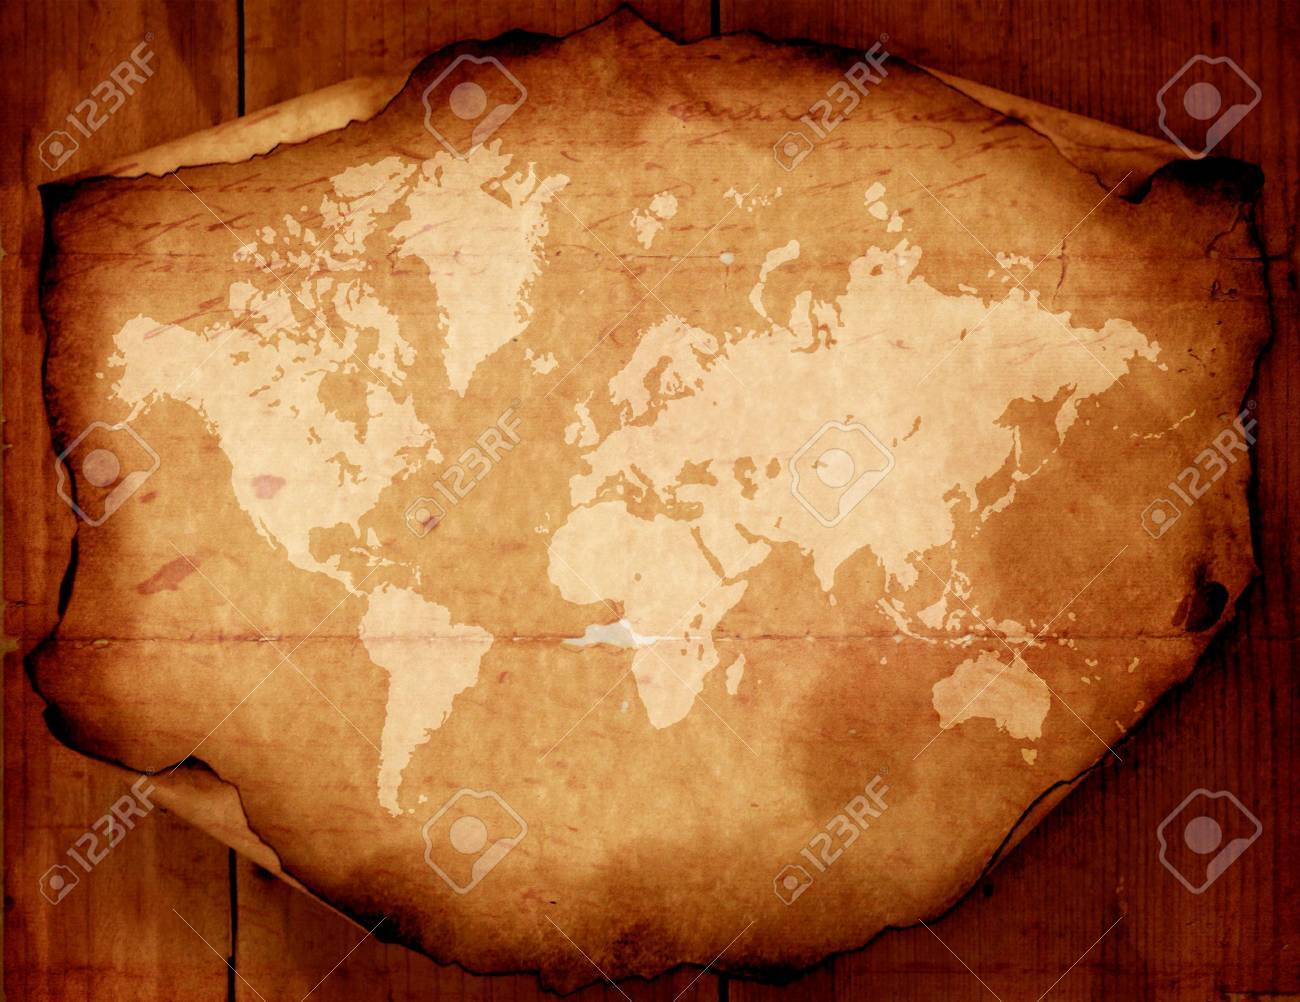 Vintage World Map Art.Vintage World Map 2d Digital Art Stock Photo Picture And Royalty